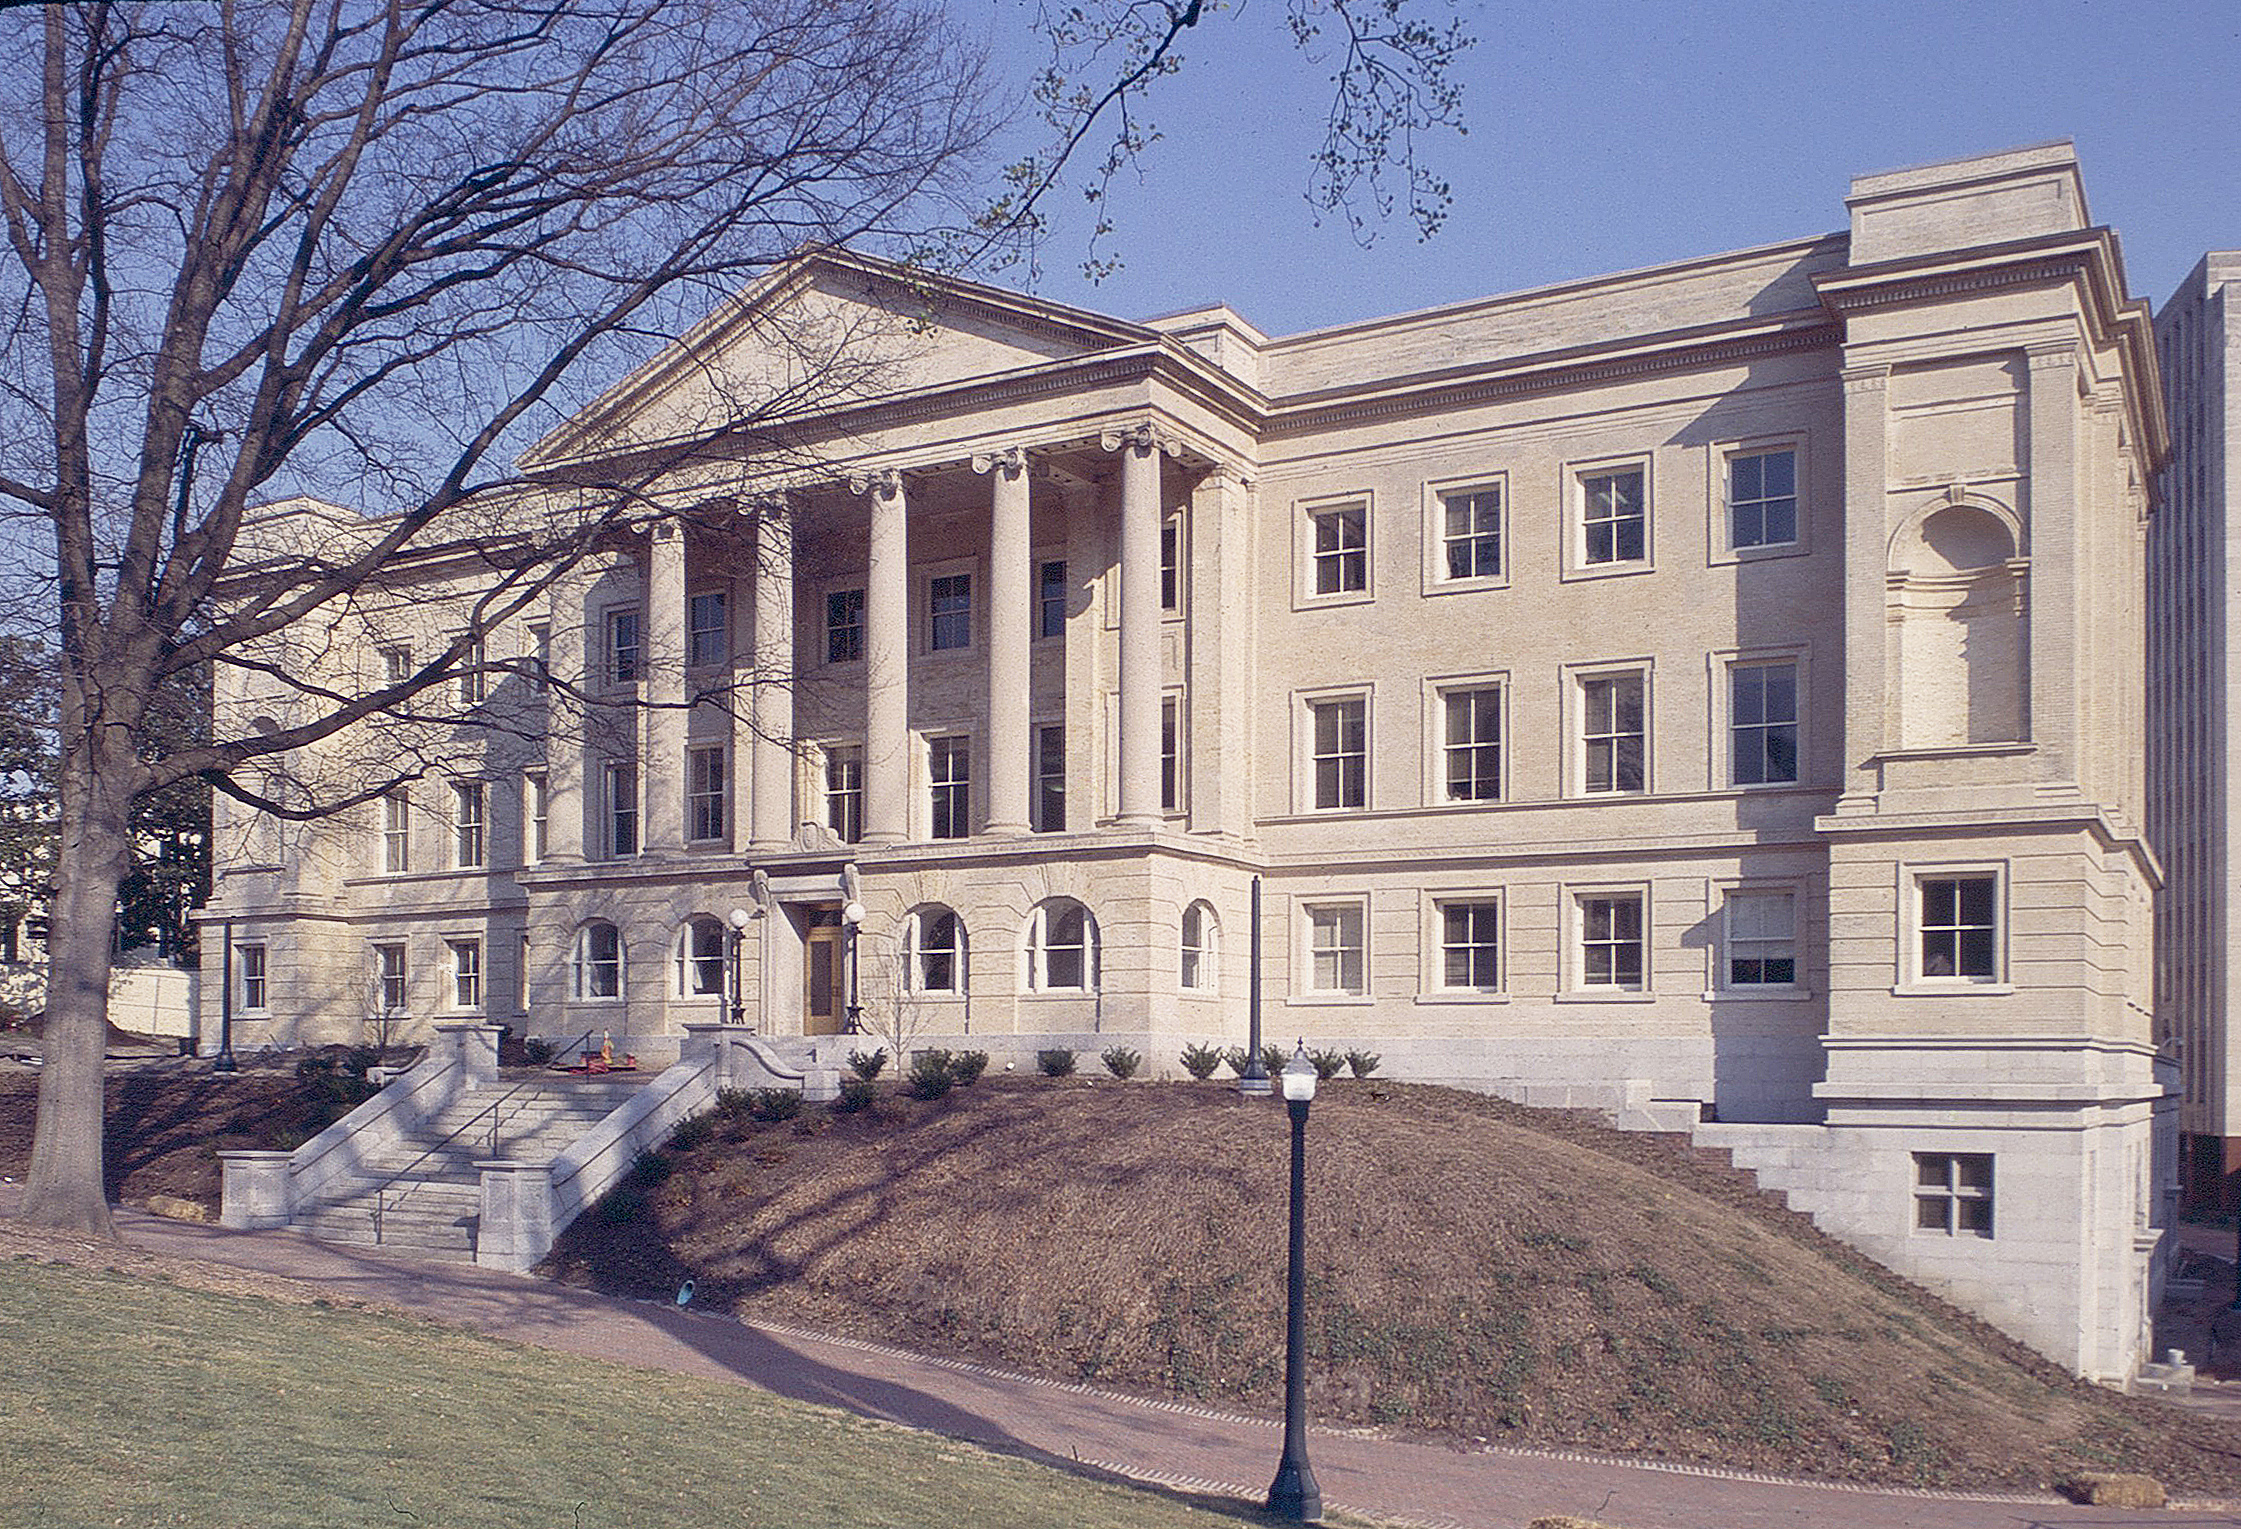 Virginia State Library (Oliver Hill Building)